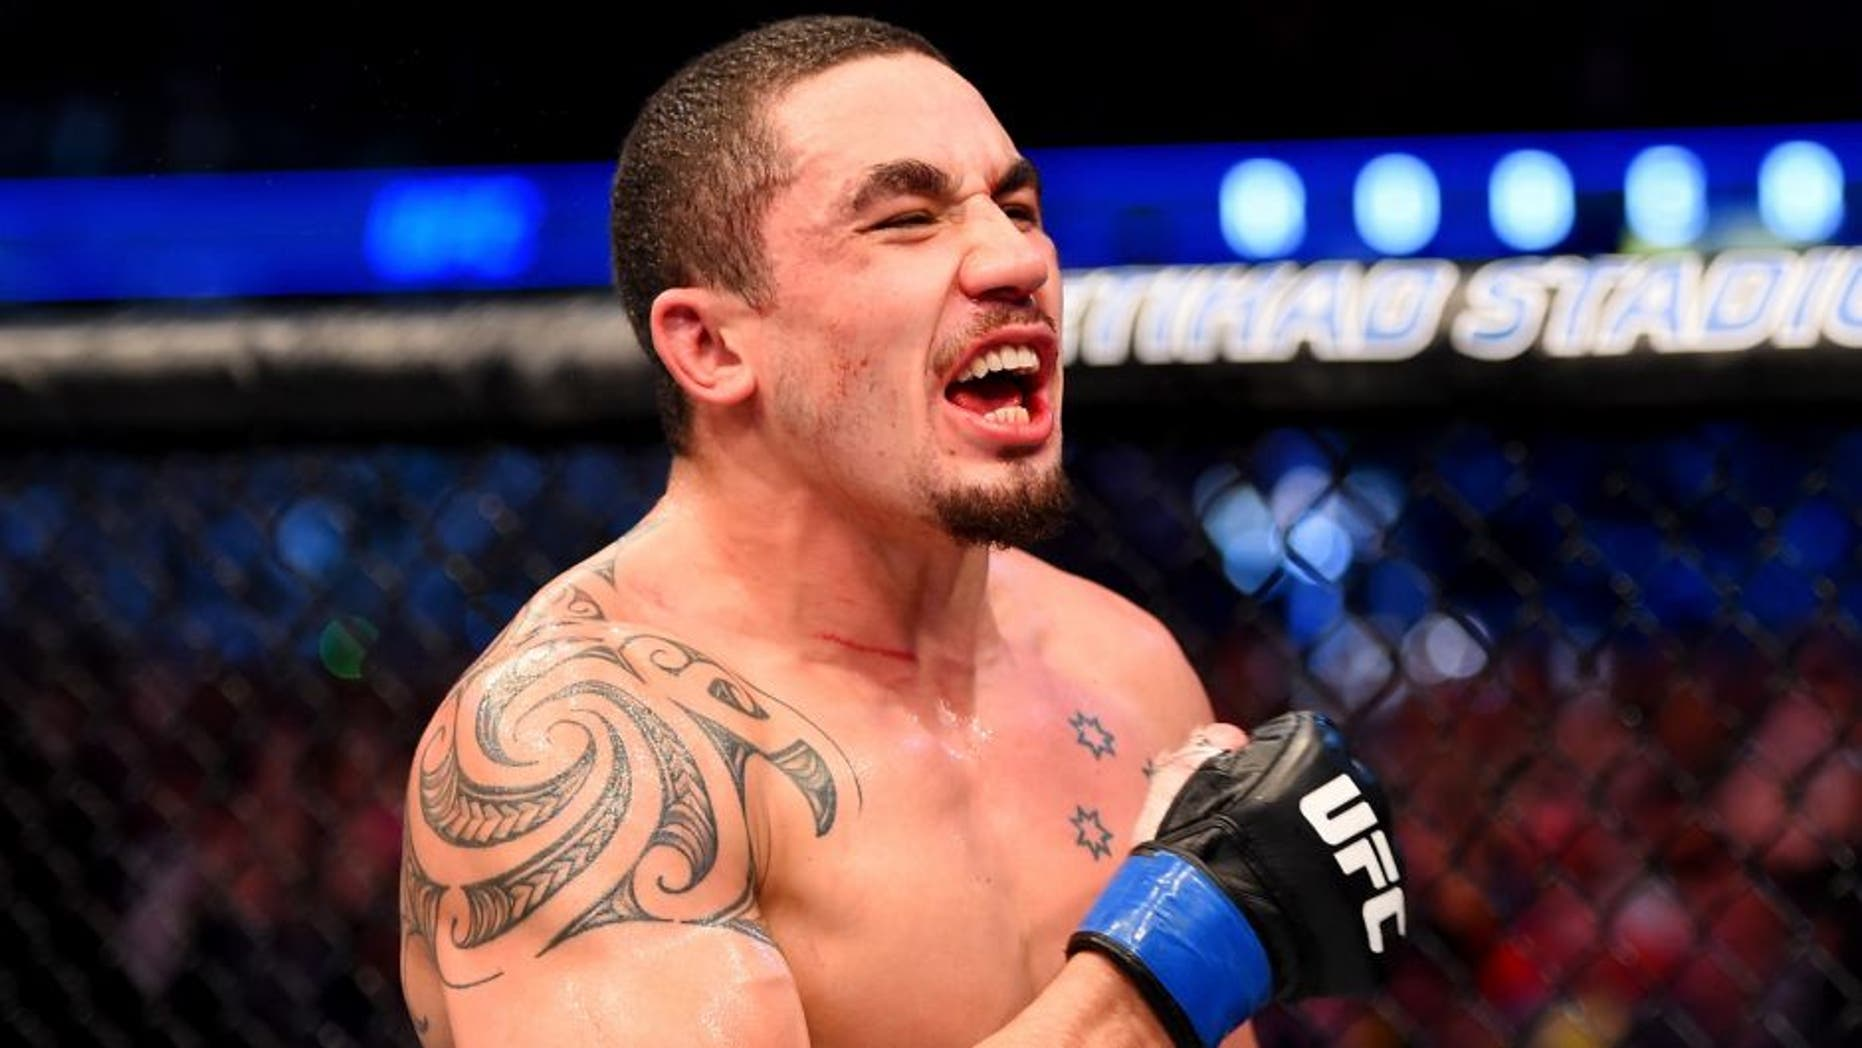 MELBOURNE, AUSTRALIA - NOVEMBER 15: Robert Whittaker celebrates his win by Unanimous Decision against Uriah Hall (not pictured) in their middleweight bout during the UFC 193 event at Etihad Stadium on November 15, 2015 in Melbourne, Australia. (Photo by Josh Hedges/Zuffa LLC/Zuffa LLC via Getty Images)